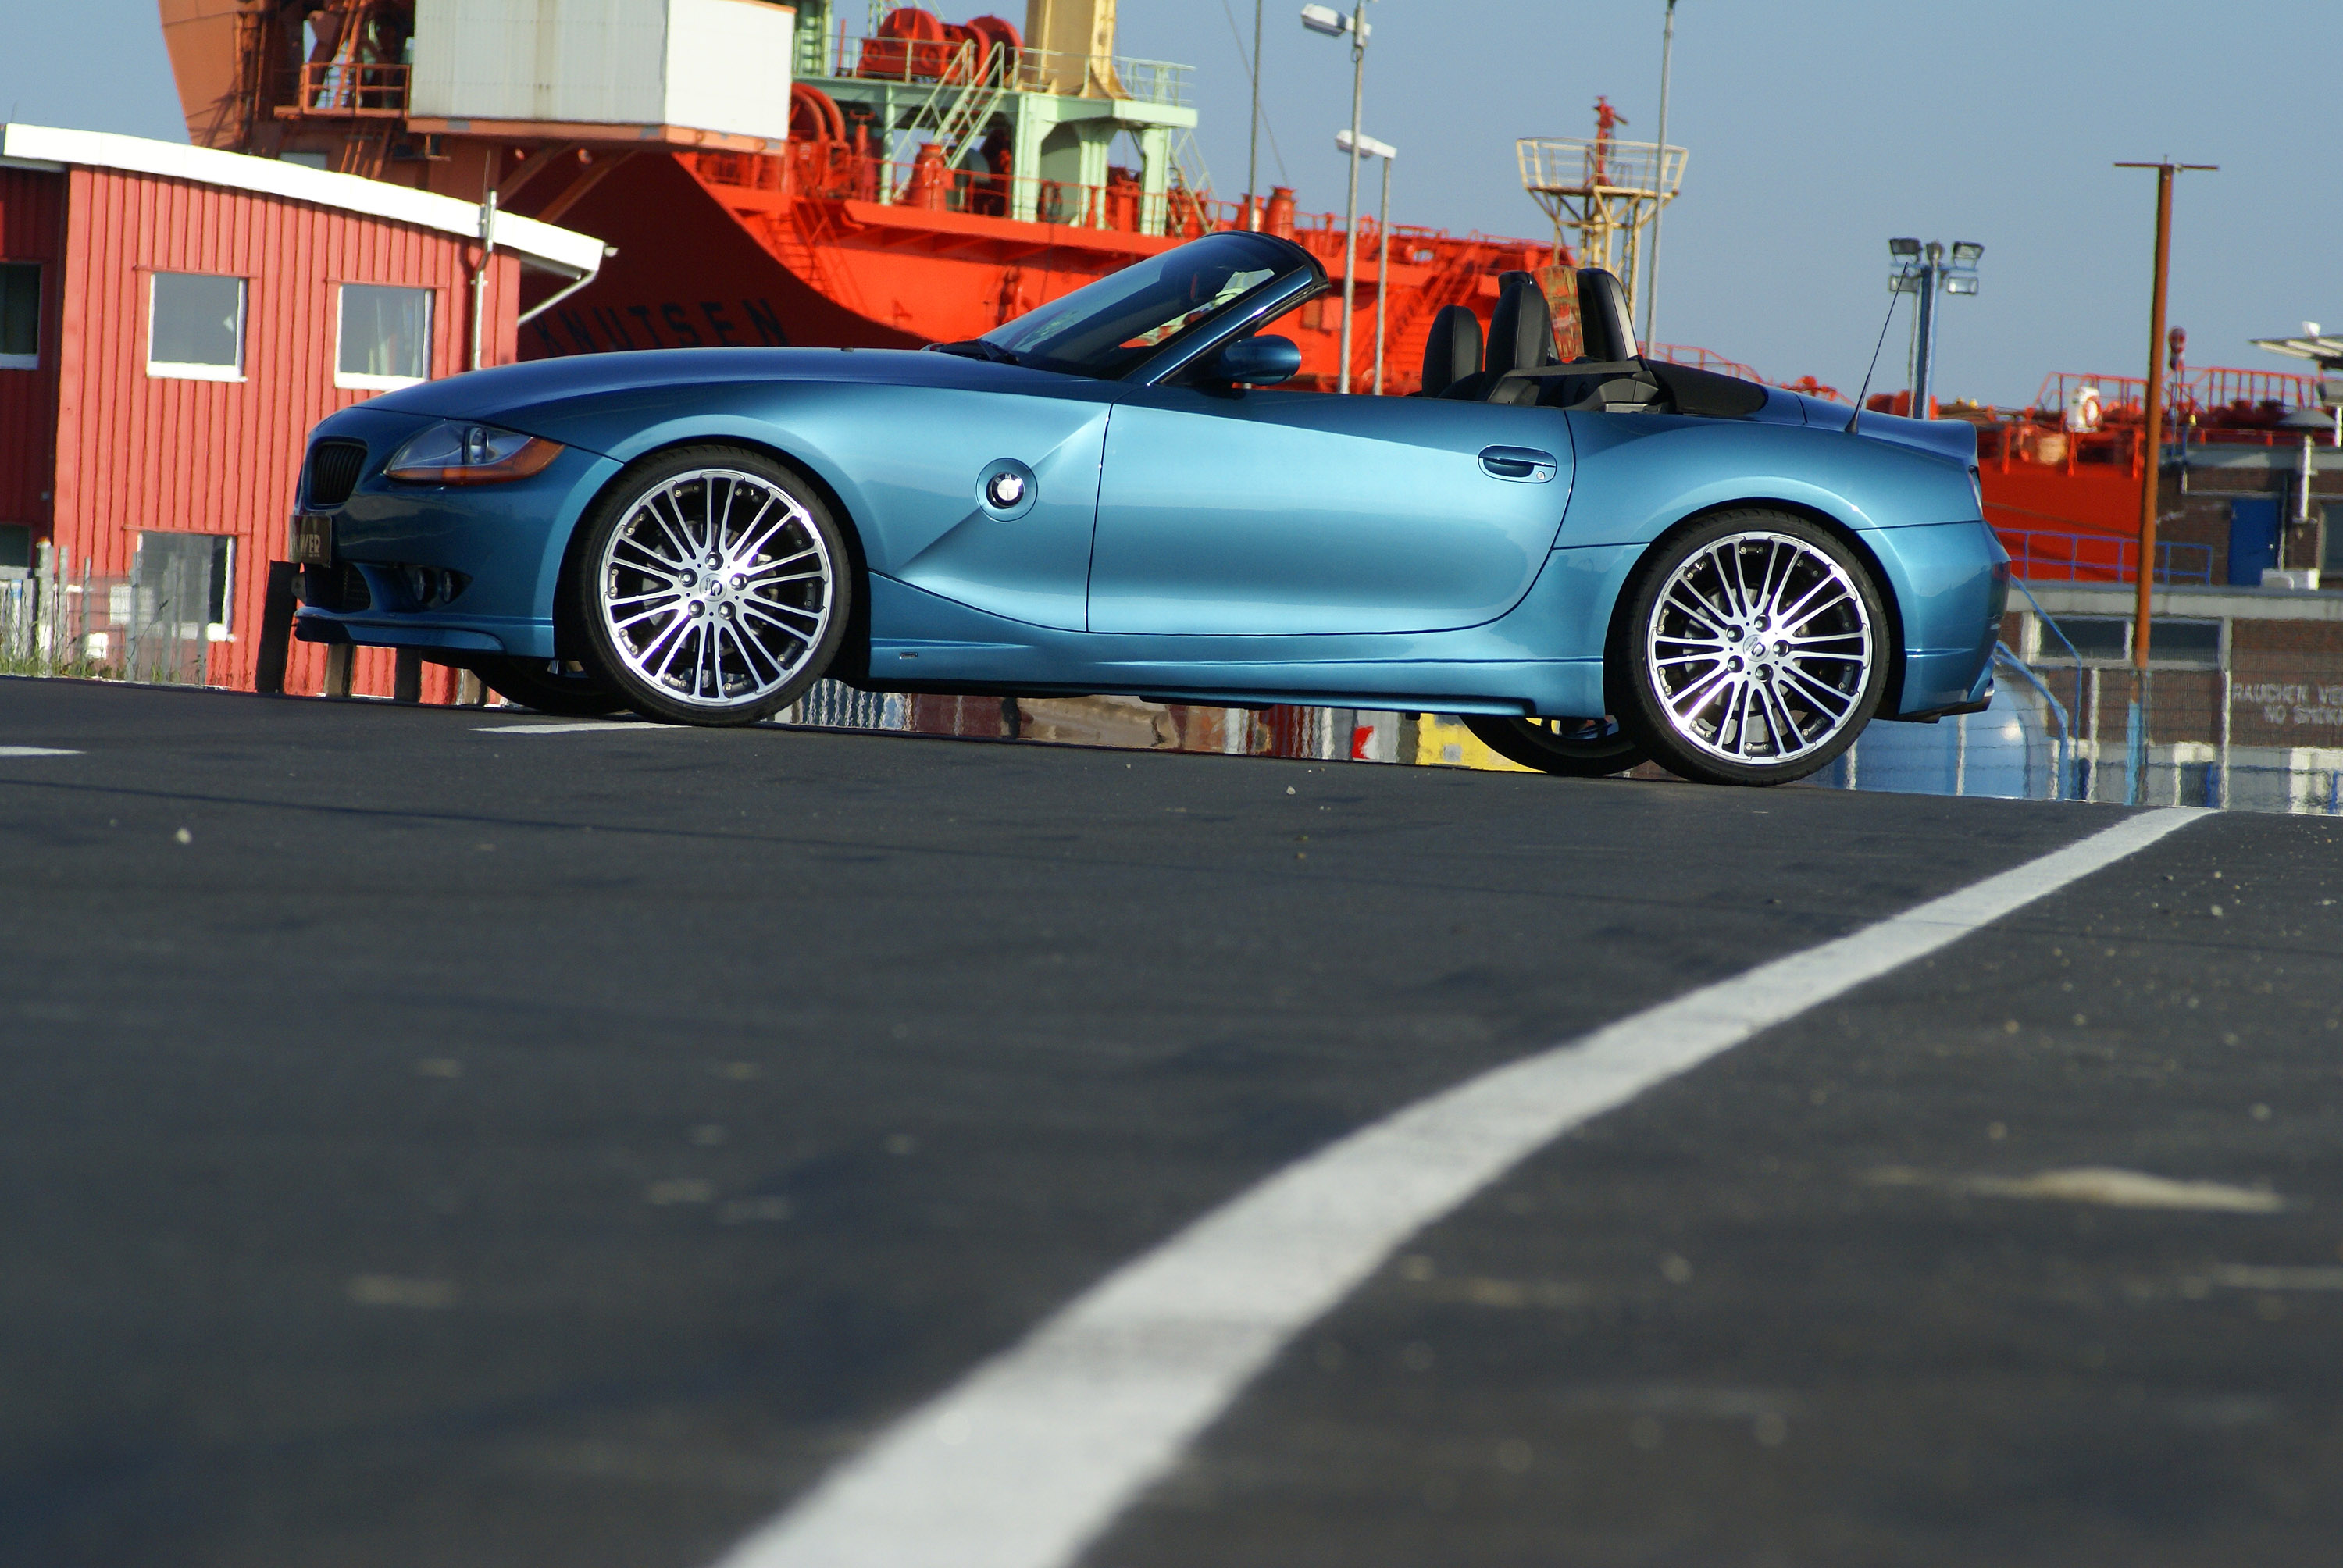 G-POWER tuning kit for the BMW 6-cylinder M54 engine